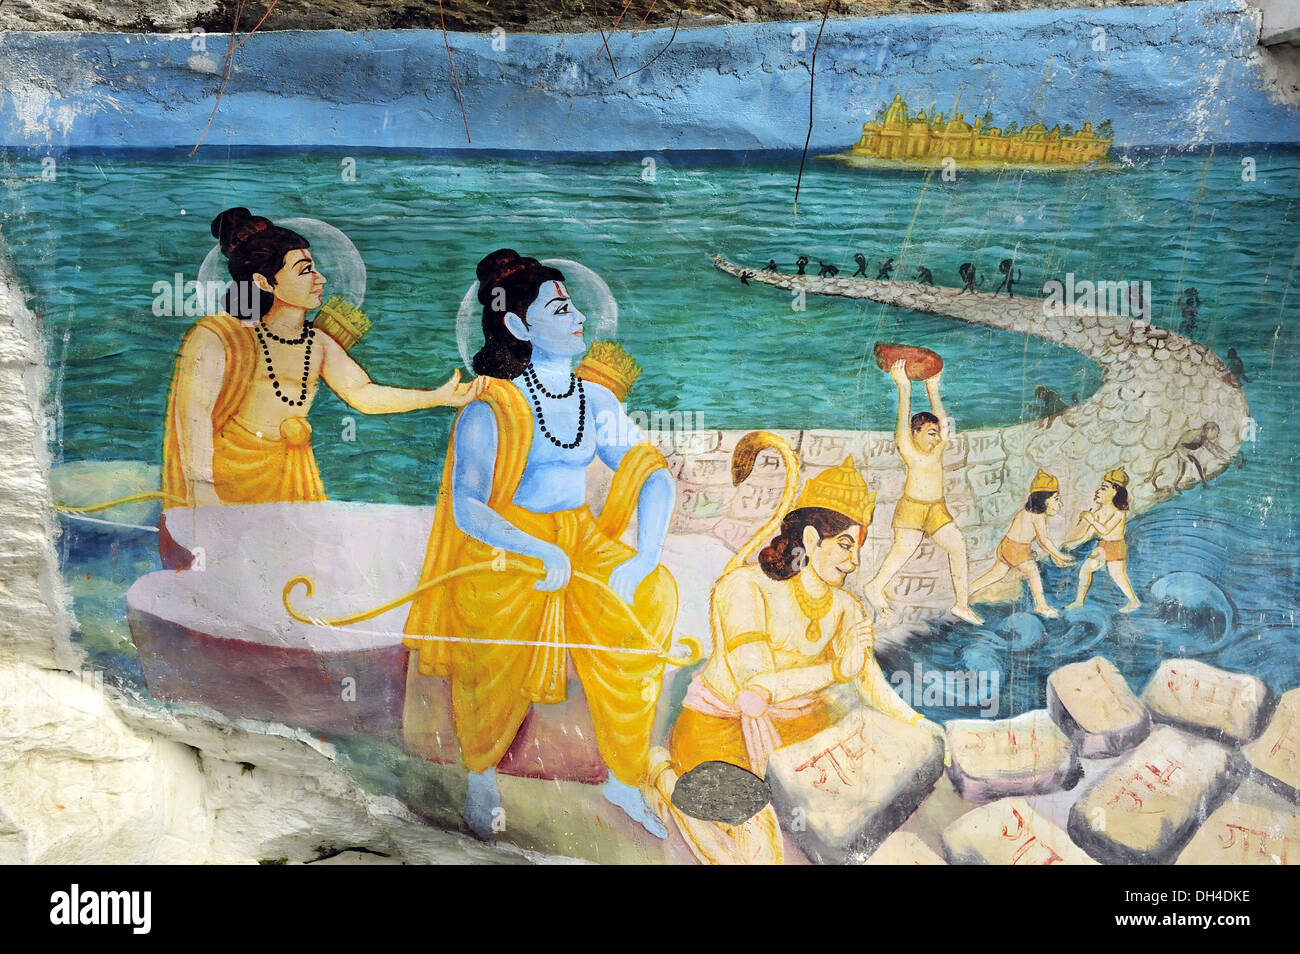 painting of lord hanuman and his army of monkeys building ram setu